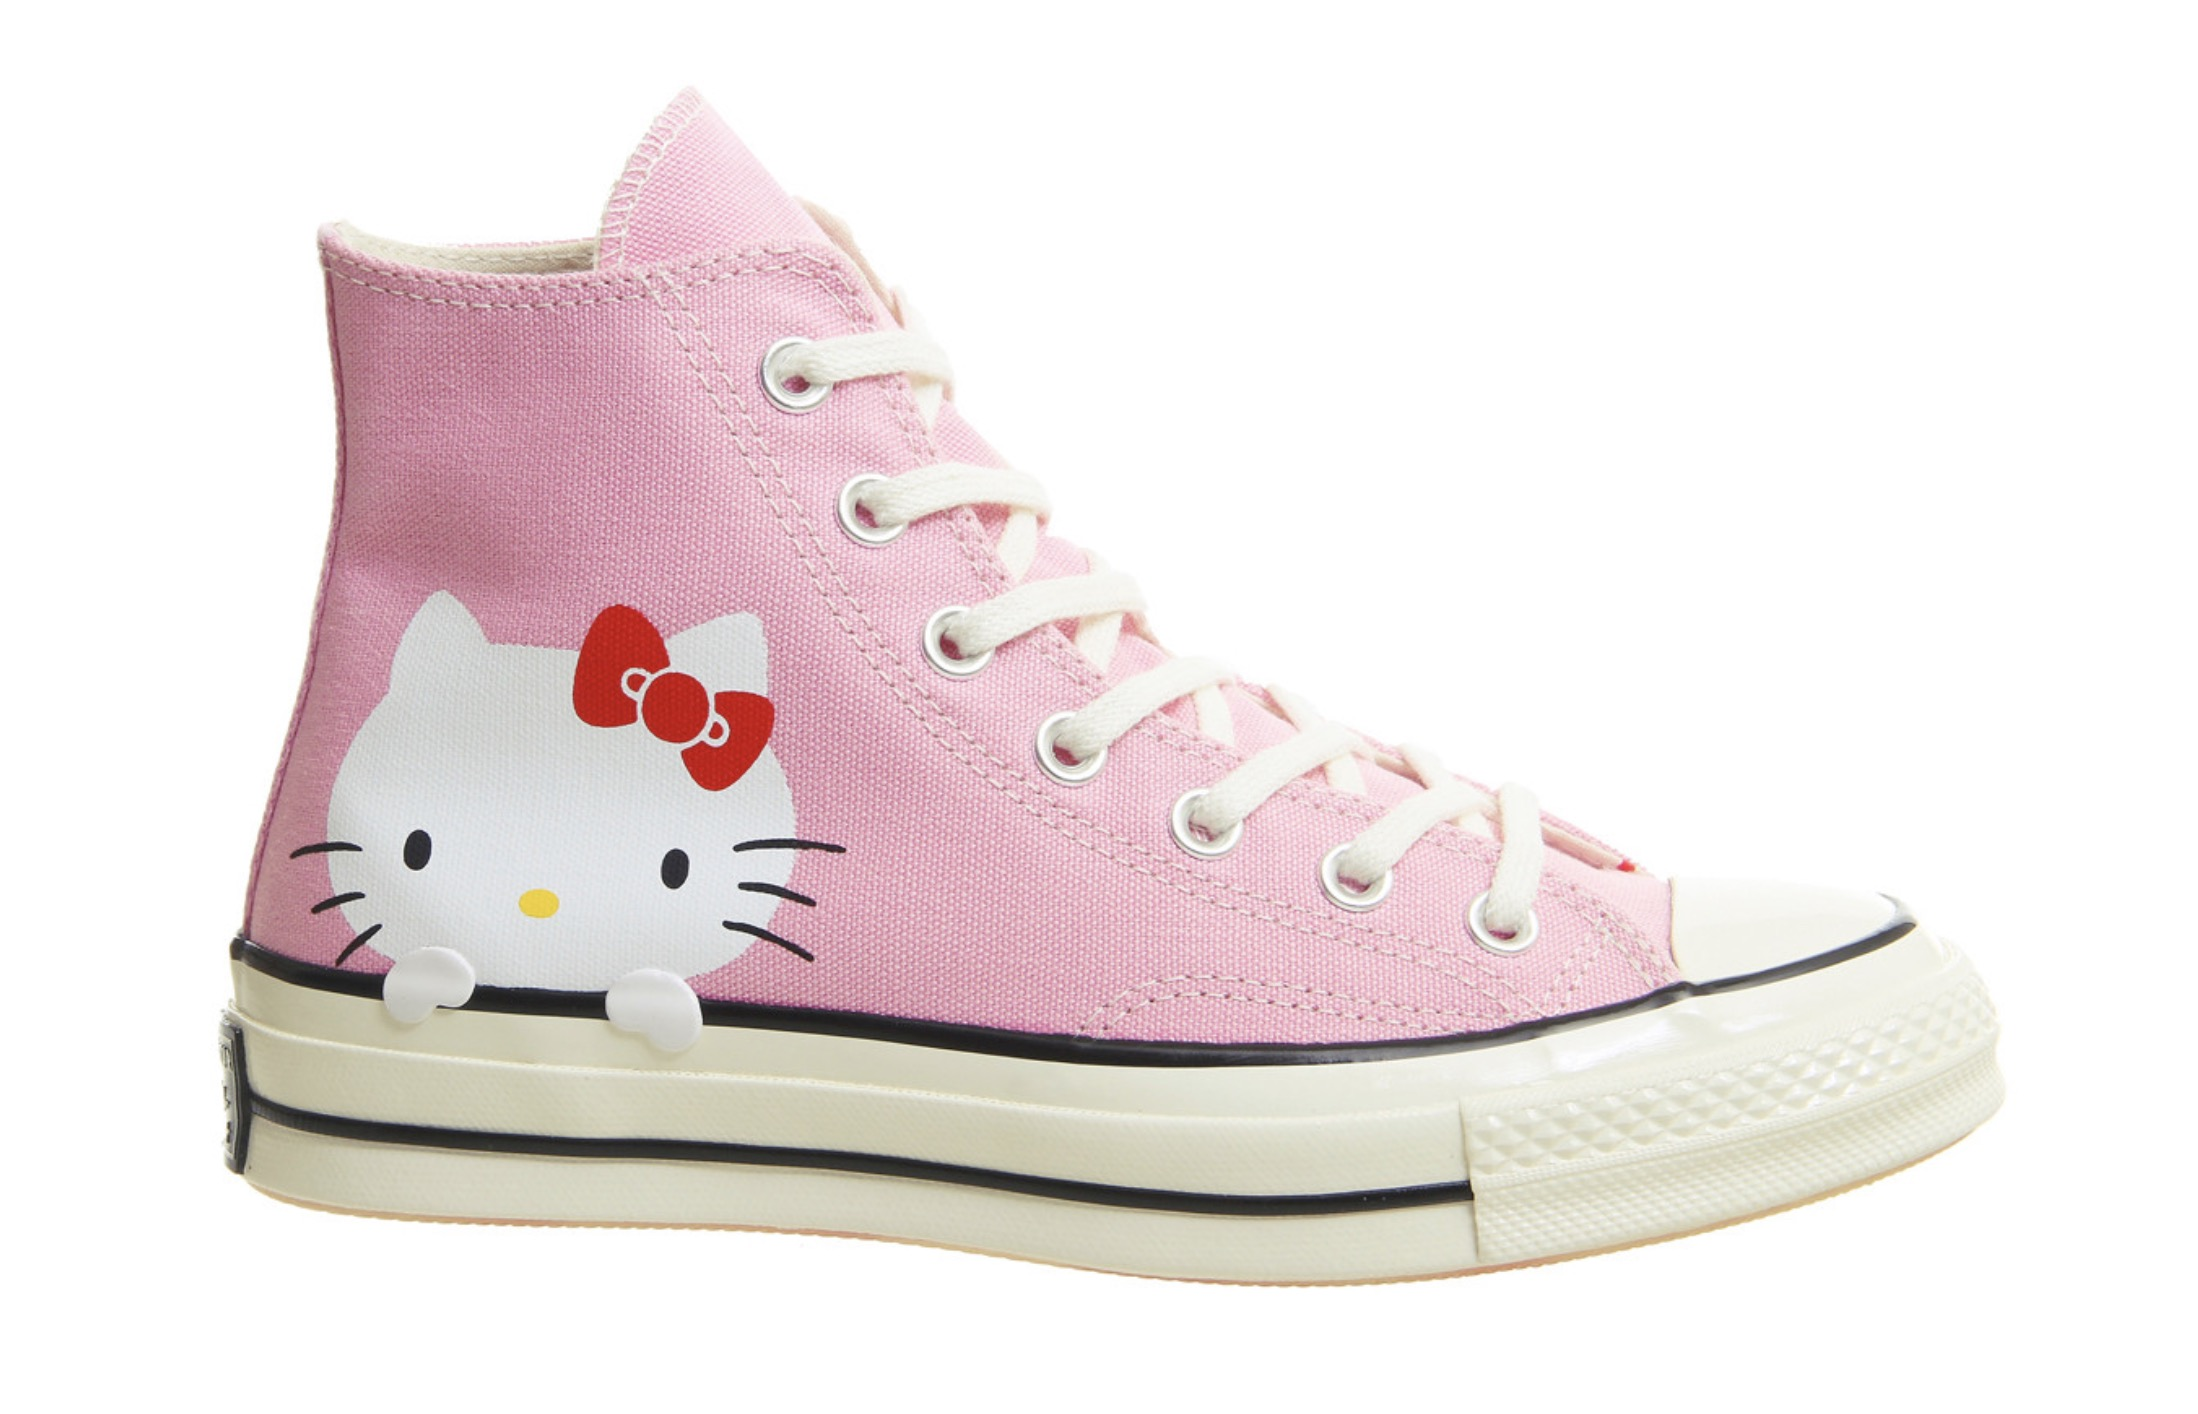 This Hello Kitty x Converse Chuck Taylor Is The Cutest Collaboration ... 137ae3356